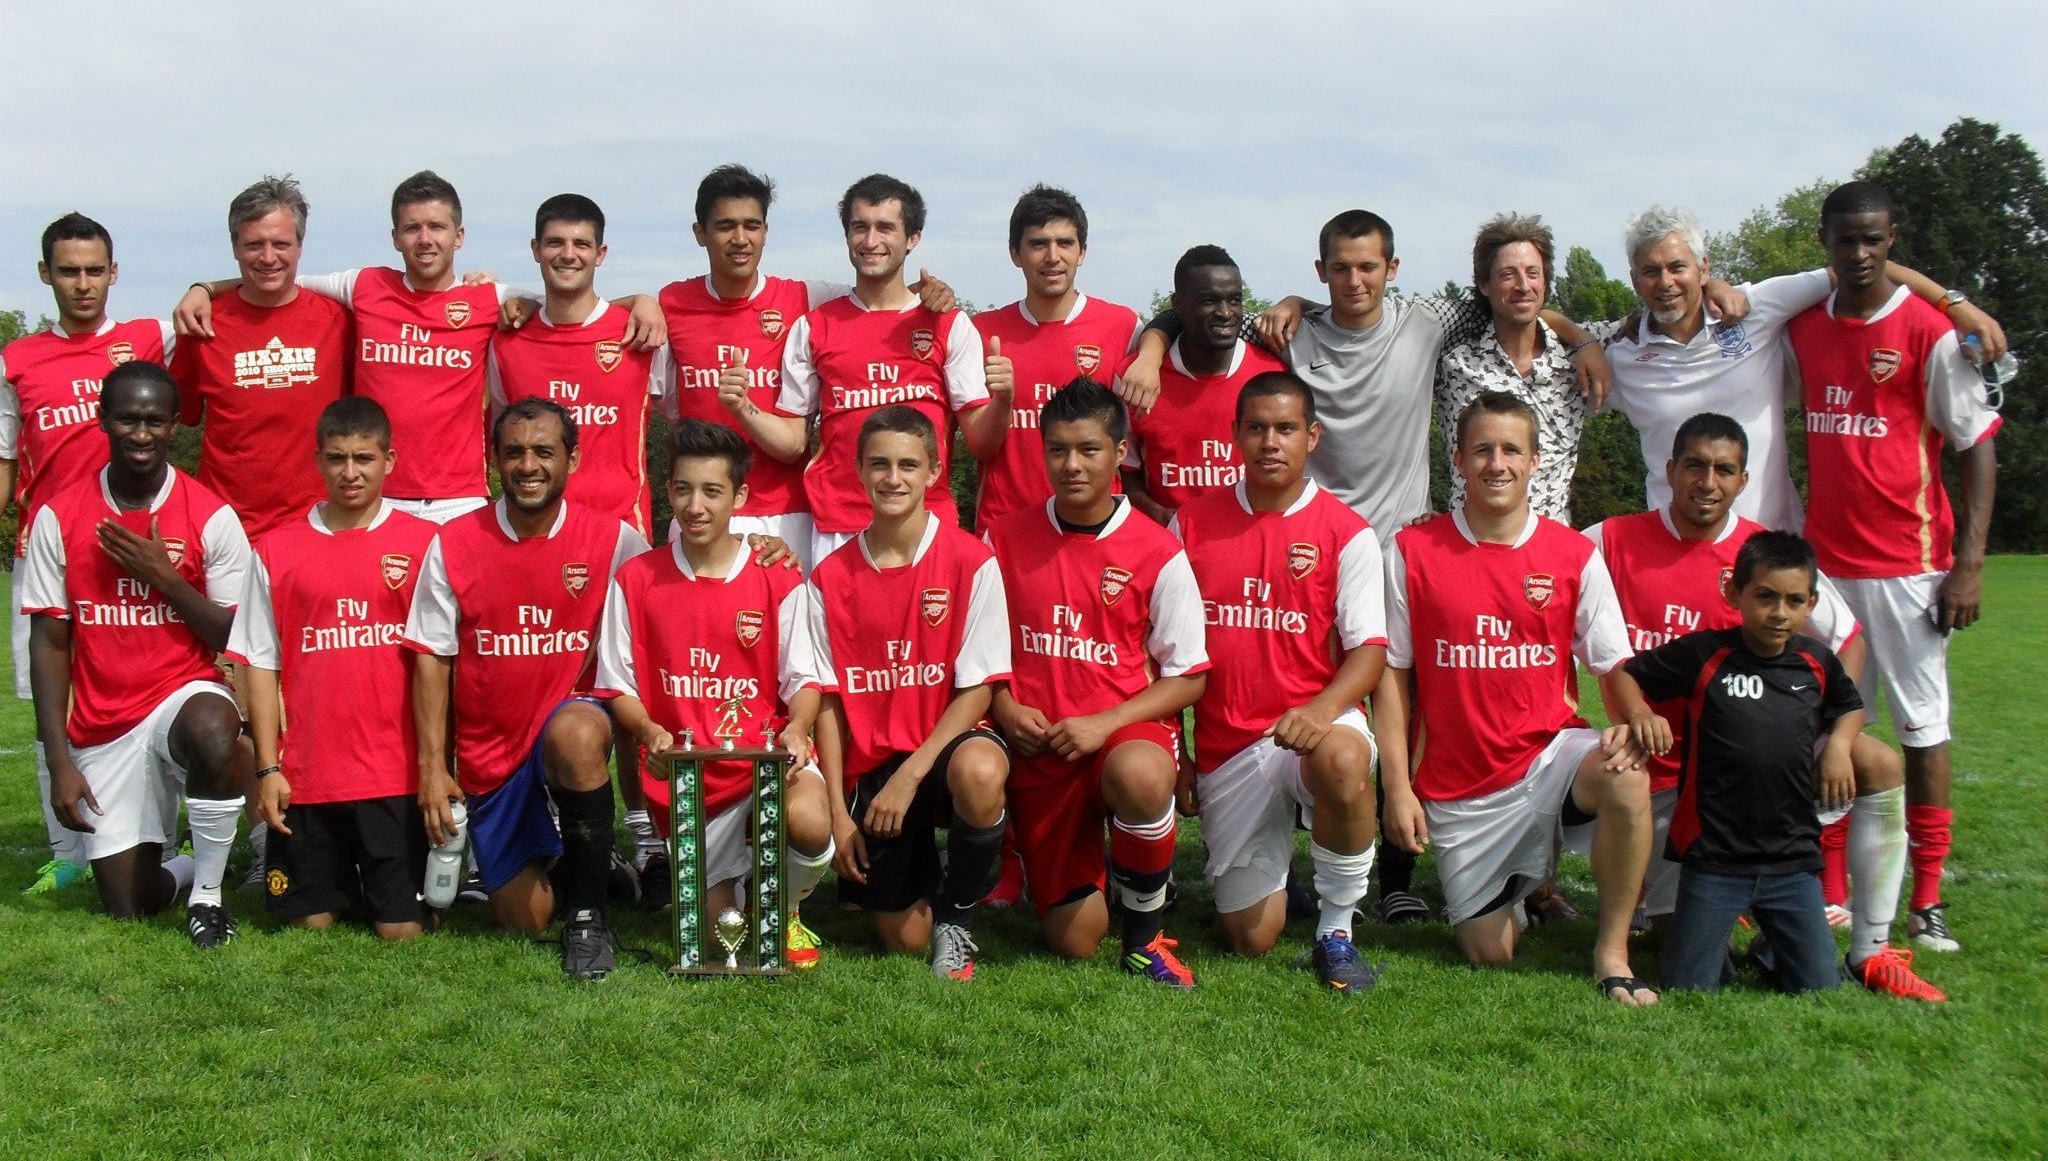 2013 Legacy Cup Champions